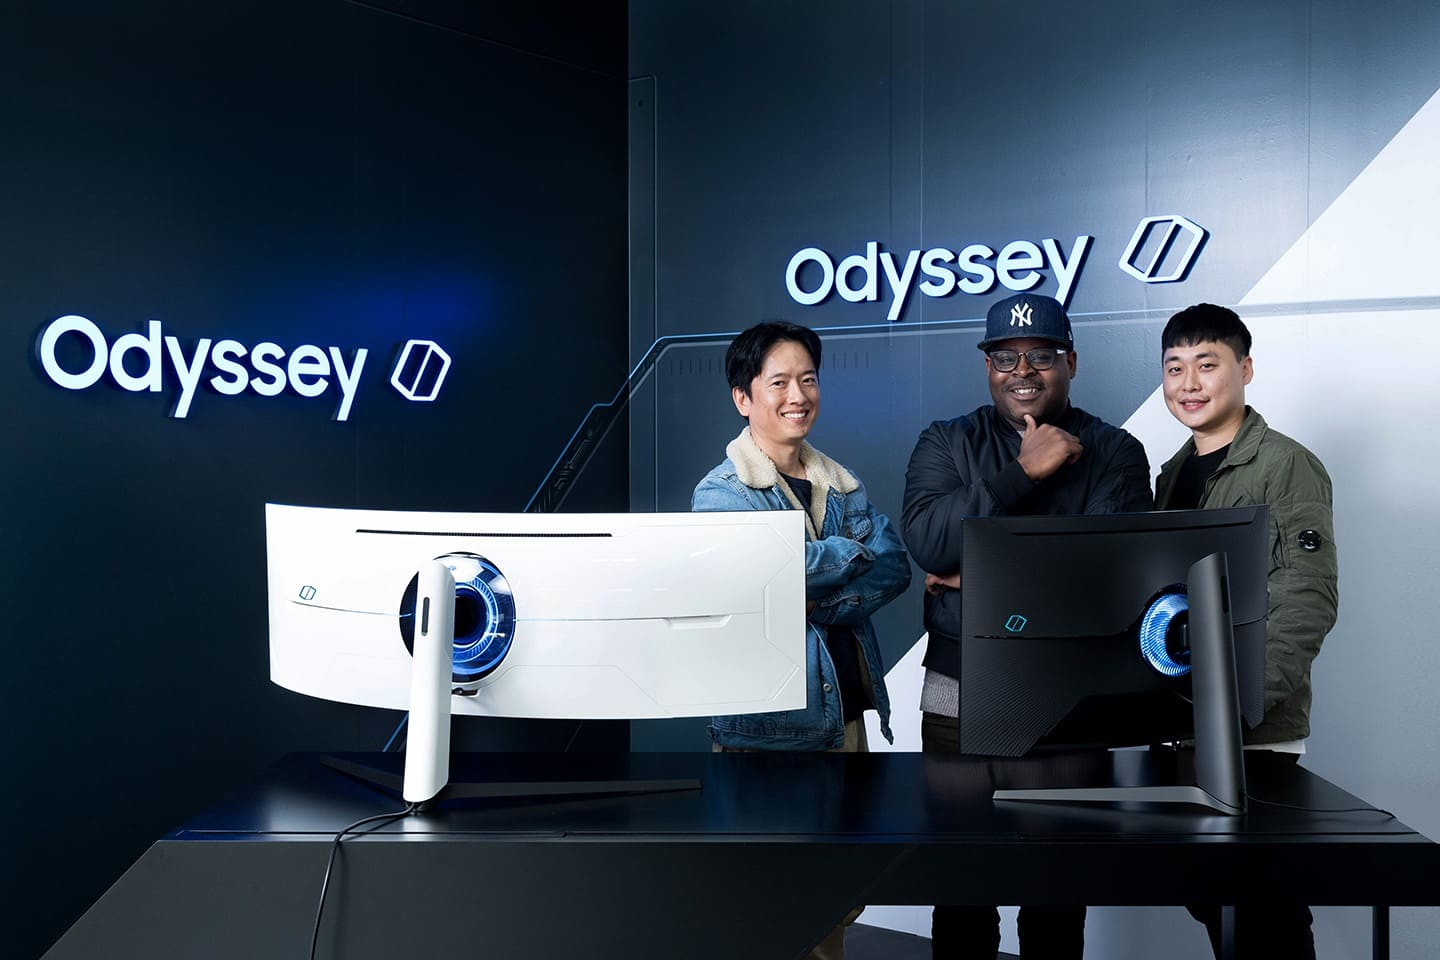 : The Odyssey G7 and G9